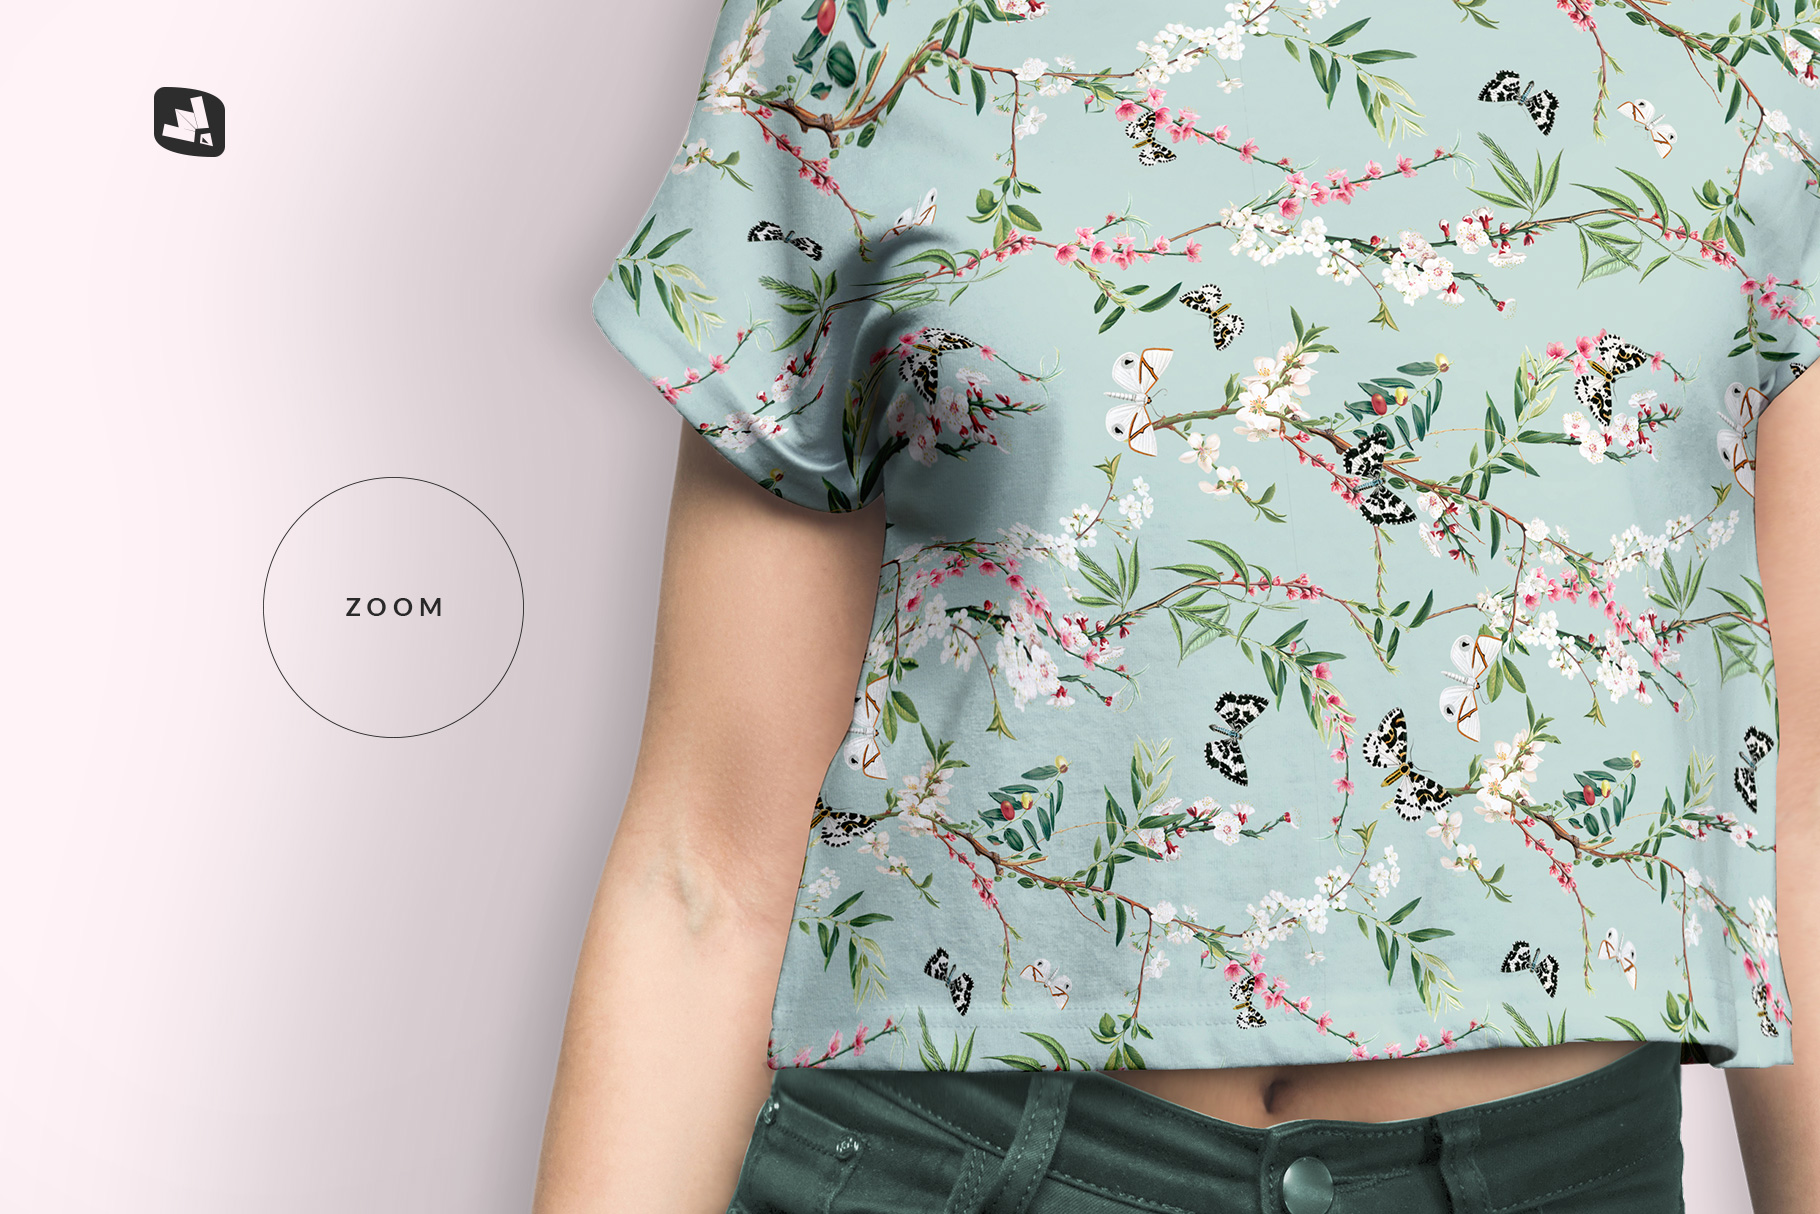 zoomed in image of the female crop top tshirt mockup